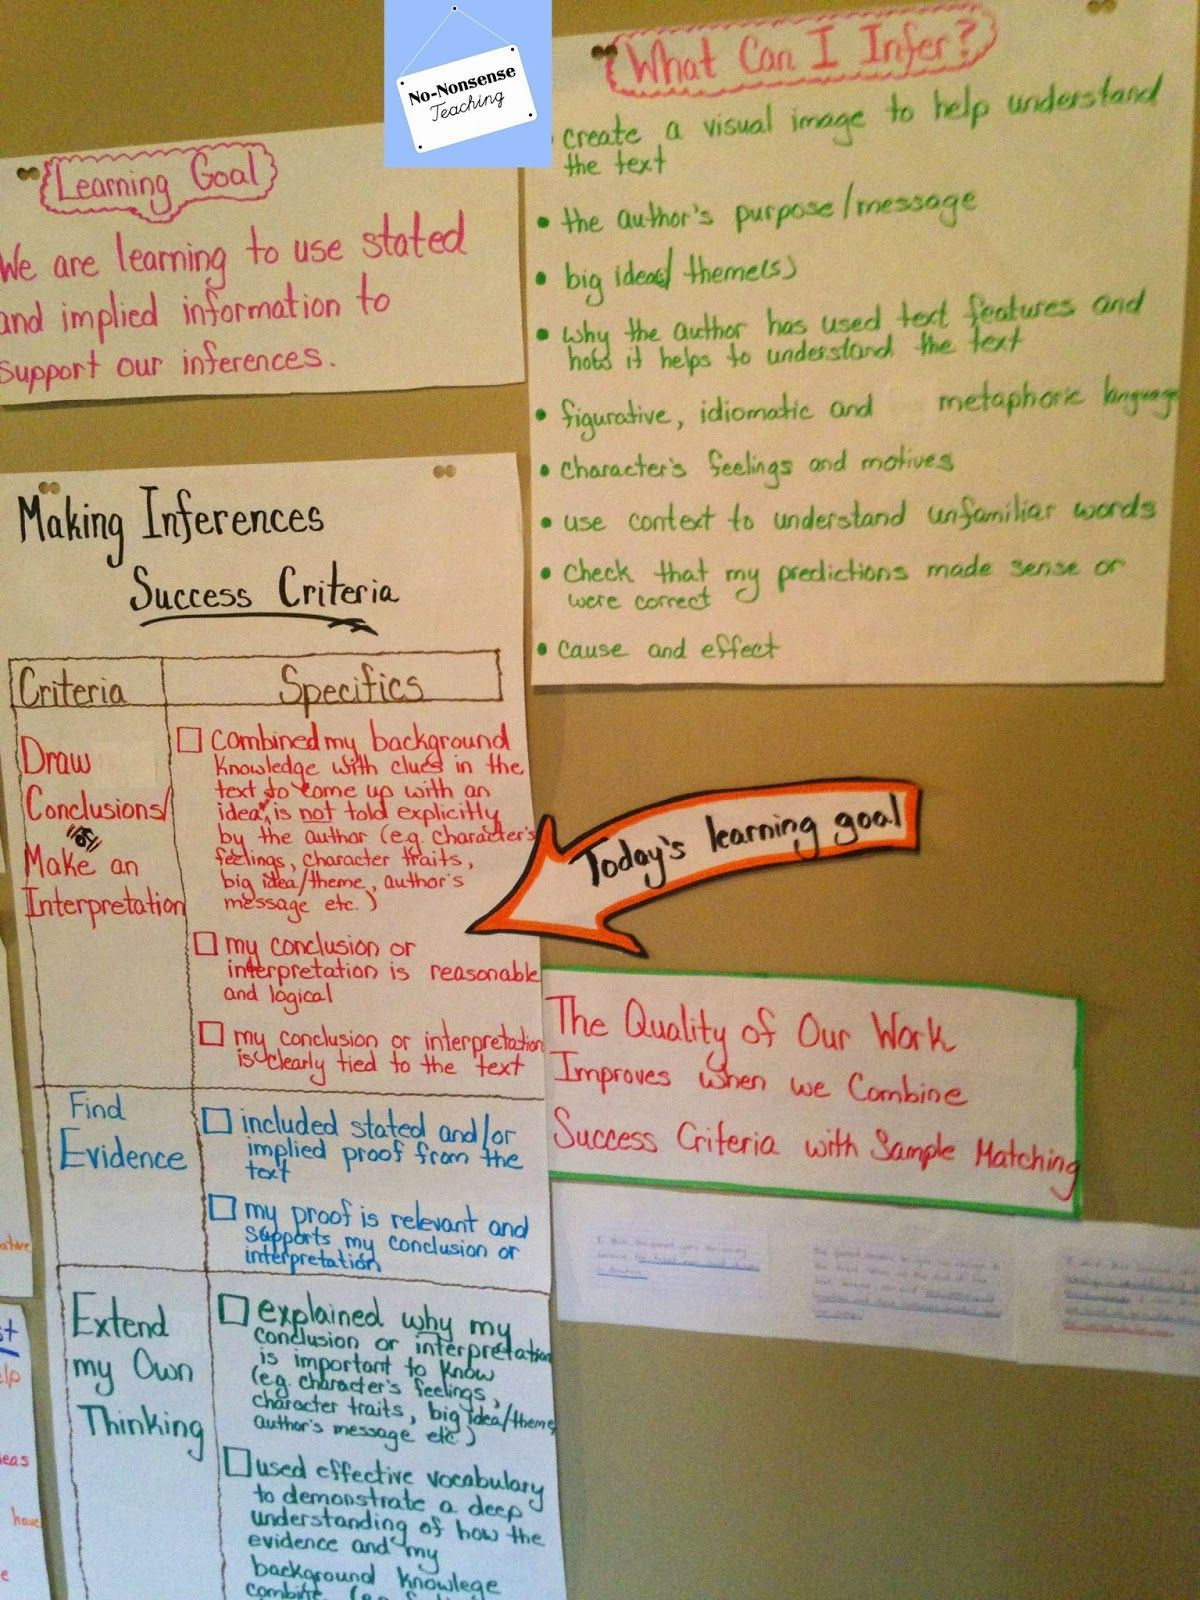 No Nonsense Teaching Grades 4 8 Reading Comprehension How To Connect Success Criteria Learning Goals Reading Comprehension Learning Goals Education Success Reading comprehension objectives for